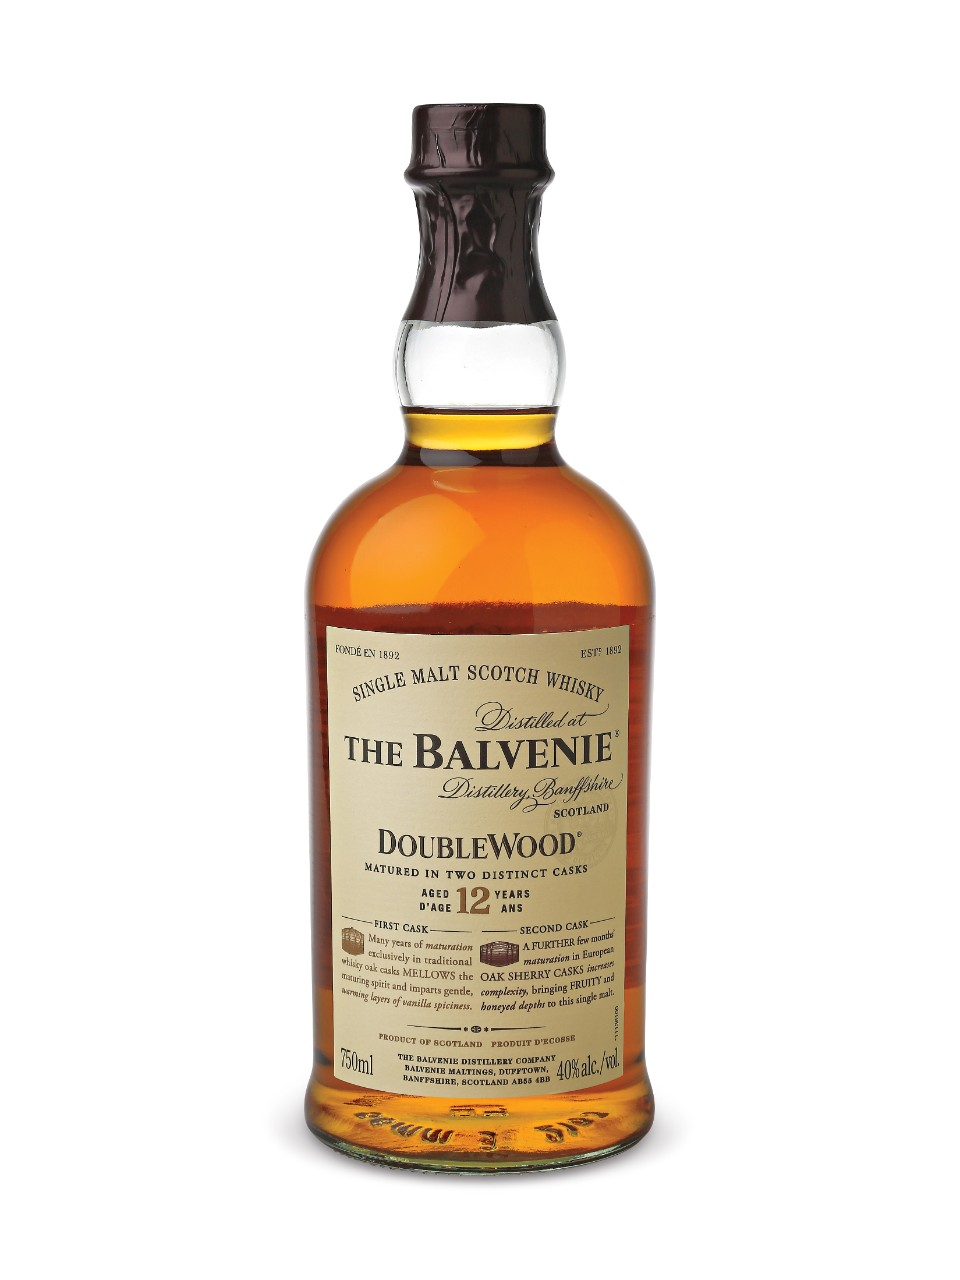 The Balvenie 12 Year Old Doublewood Scotch Whisky from LCBO